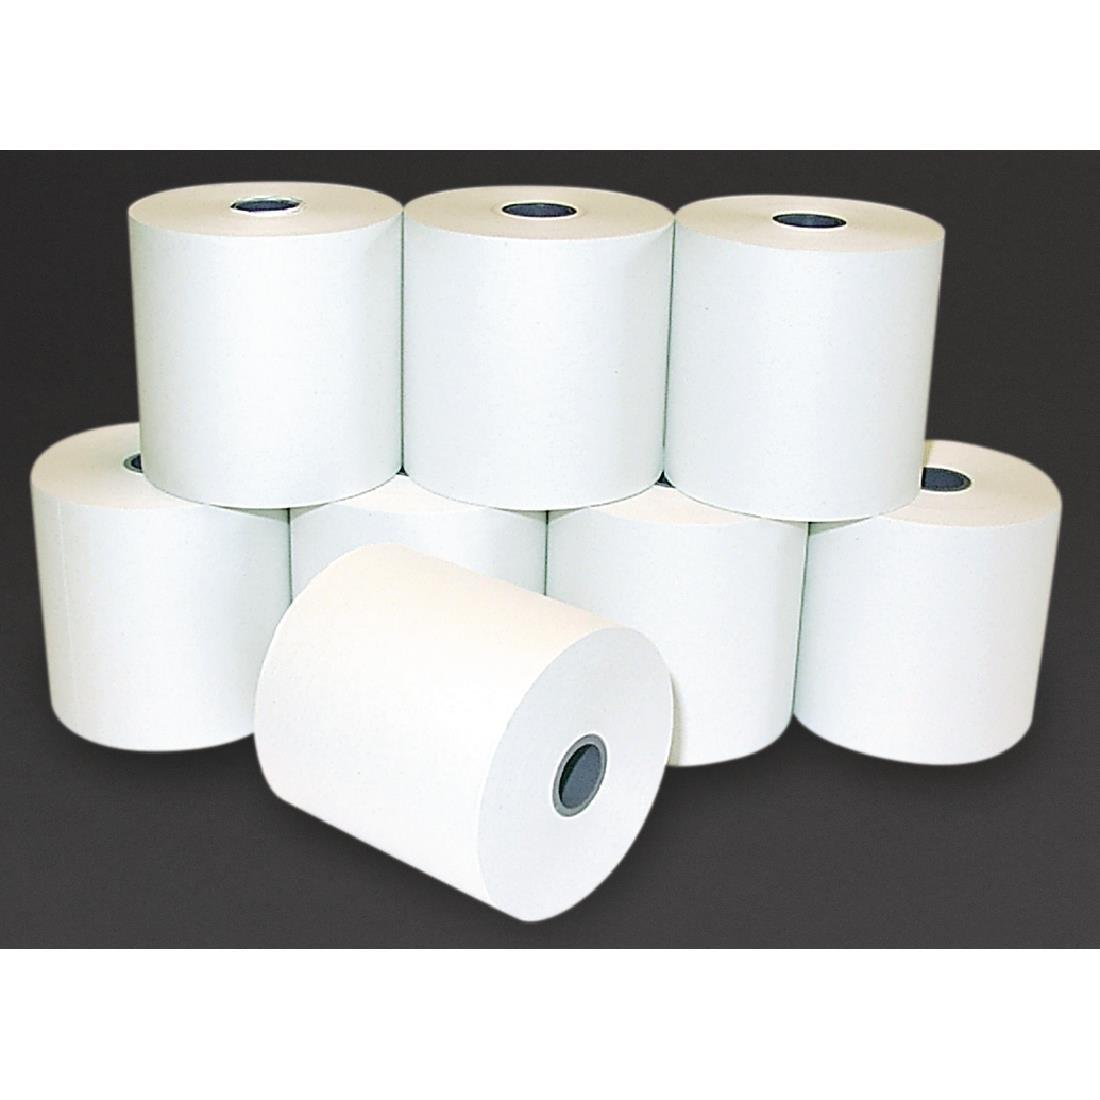 20 Rolls 80 x 70mm Thermal Till Rolls For Credit Card PDQ Machines